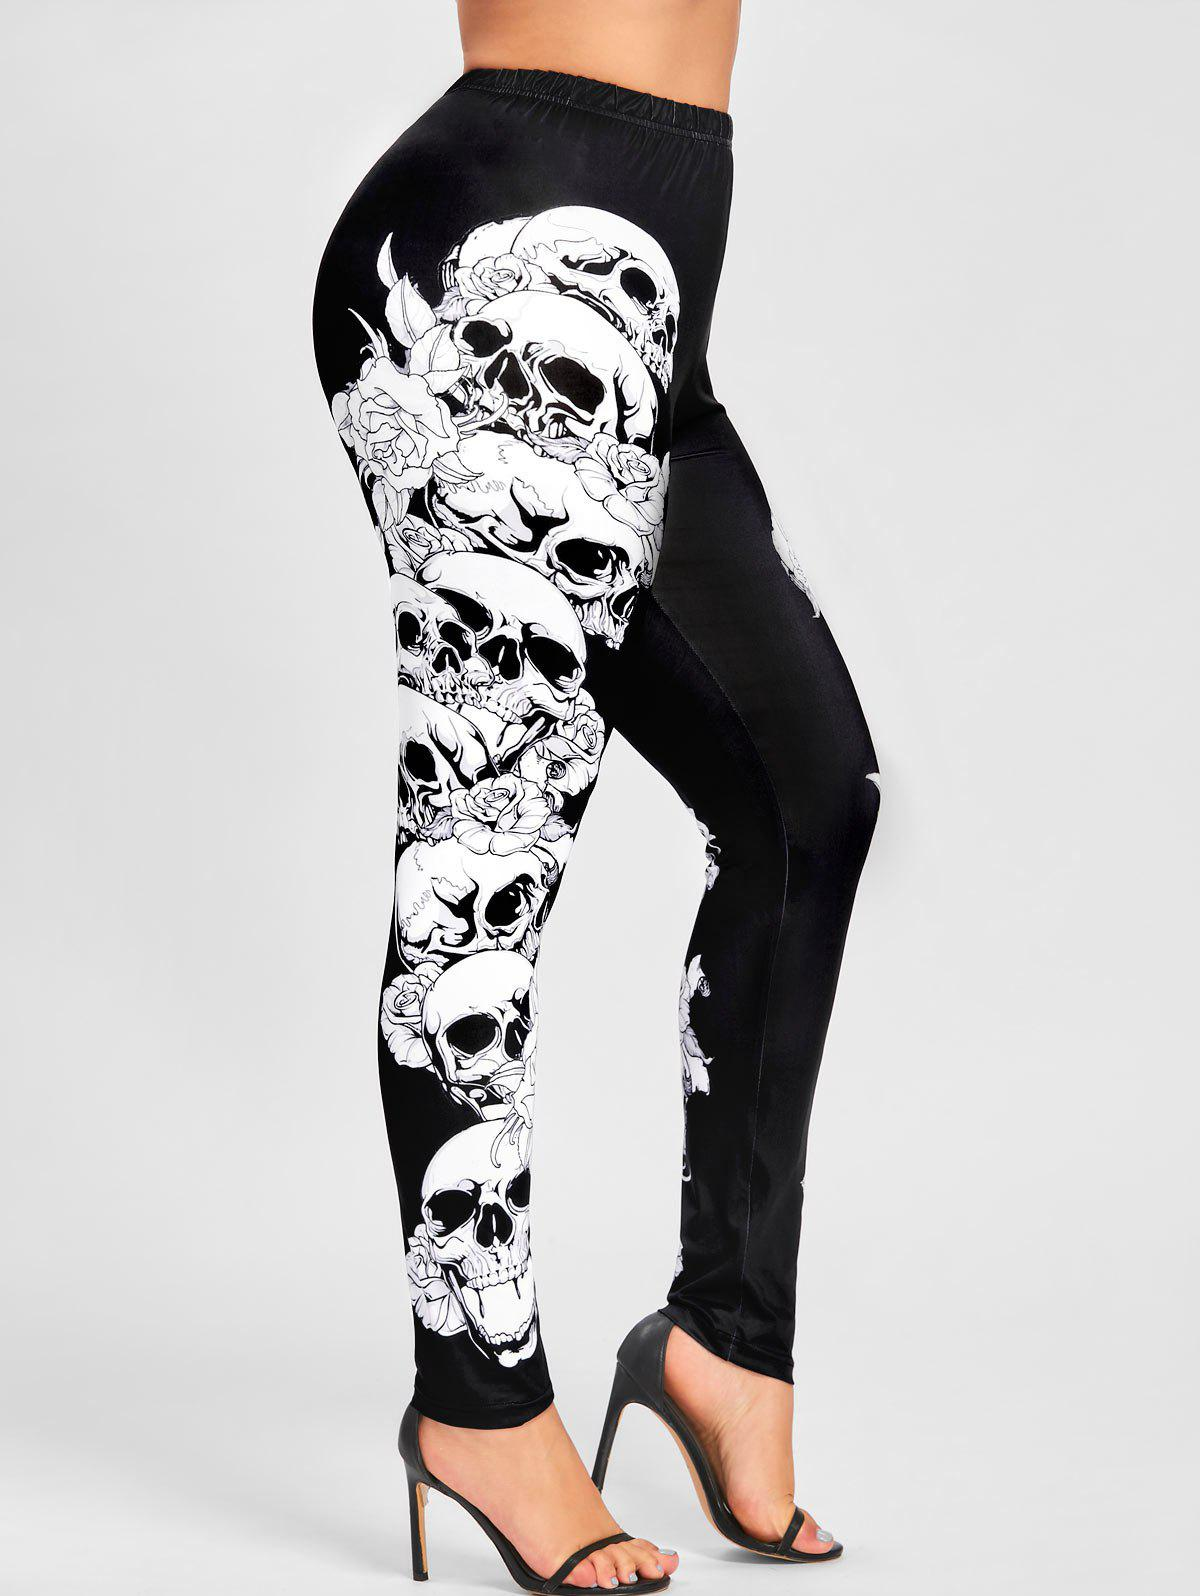 Halloween Plus Size Skulls Monochrome LeggingsWOMEN<br><br>Size: 2XL; Color: BLACK; Style: Casual; Length: Normal; Material: Polyester; Fit Type: Skinny; Waist Type: Mid; Closure Type: Elastic Waist; Pattern Type: Skulls; Pant Style: Pencil Pants; Weight: 0.2400kg; Package Contents: 1 x Leggings;